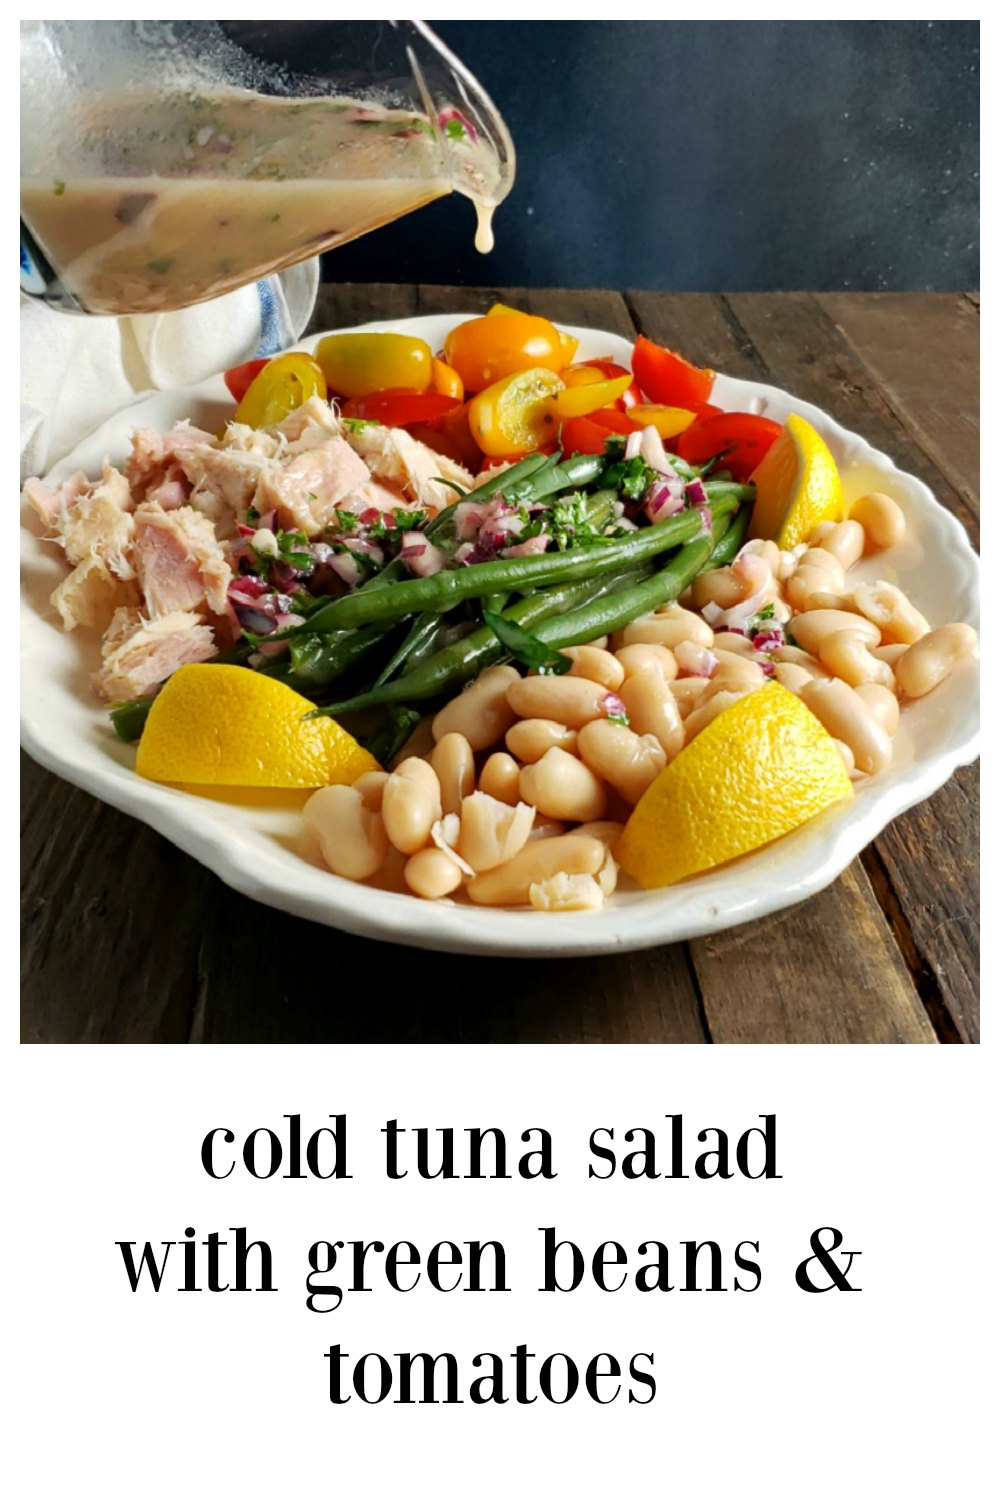 Cold Tuna Salad with Green Beans - fab for spring or summer! Fast & easy using pouch or canned tuna but even more fab if you make your own! #TunaSalad #ColdTunaSalad #TunaSaladGreenBeansTomatoes #SaladNicoise #CannedBeansRecipe #CannedTunaRecipe